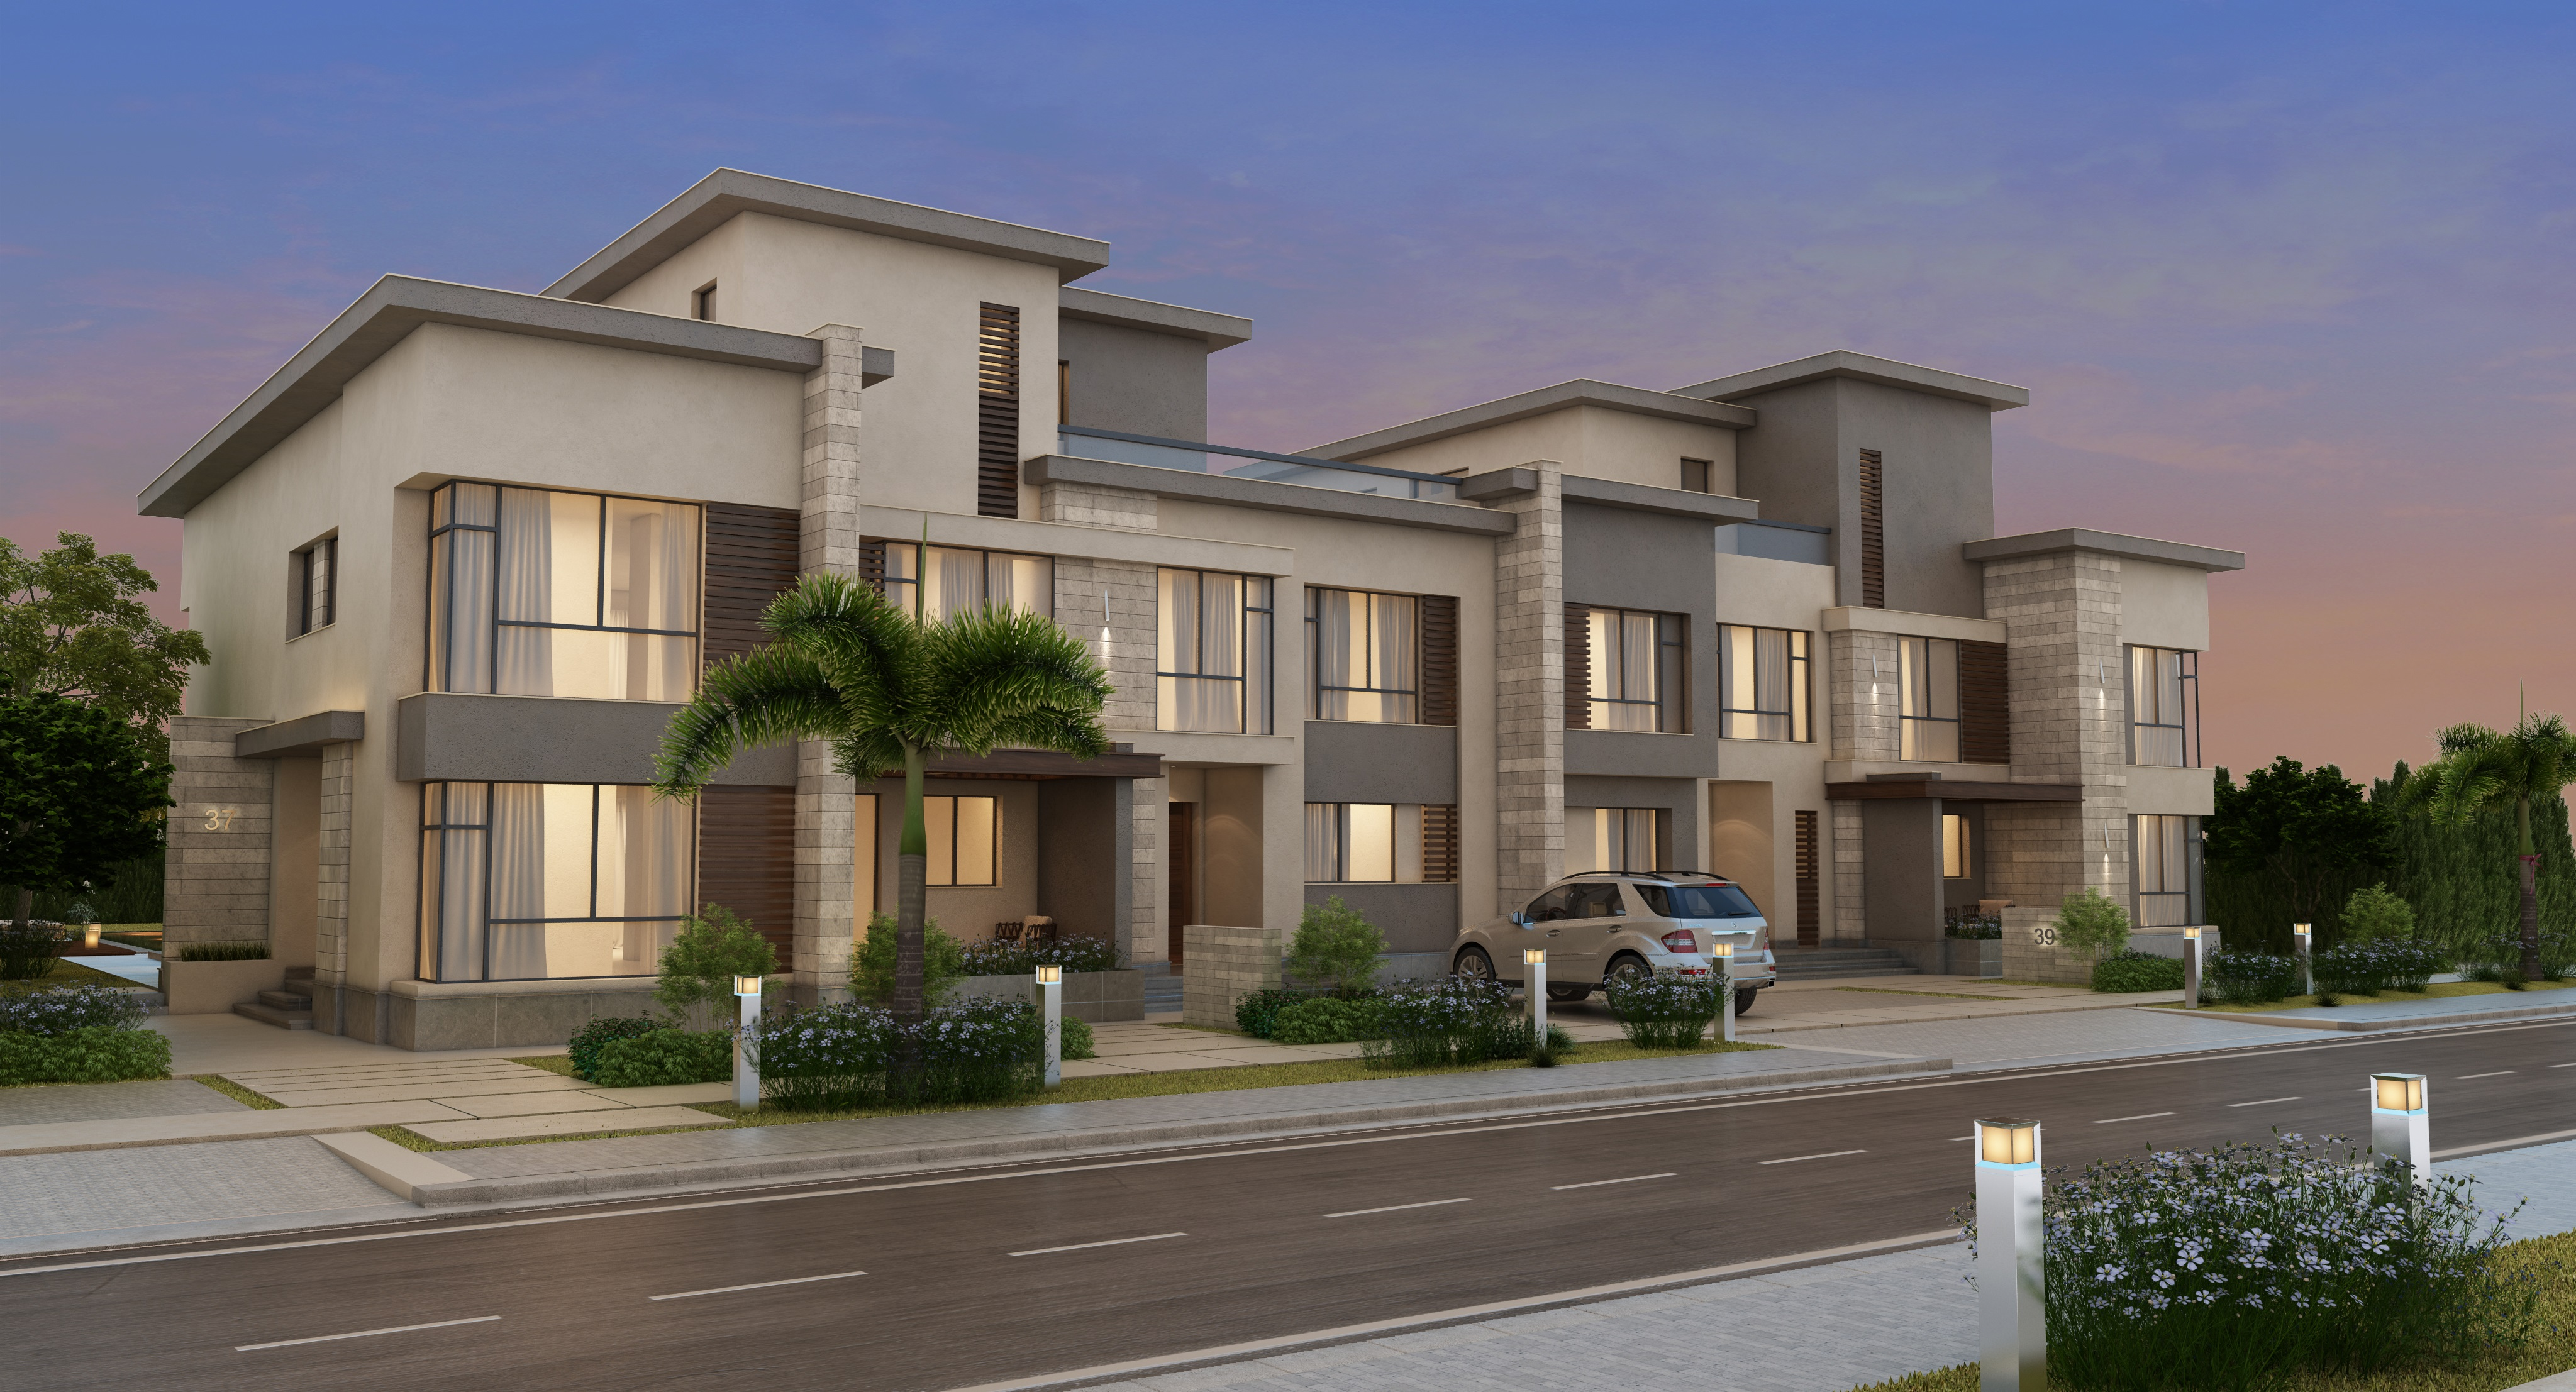 739-townhouse-middle-left